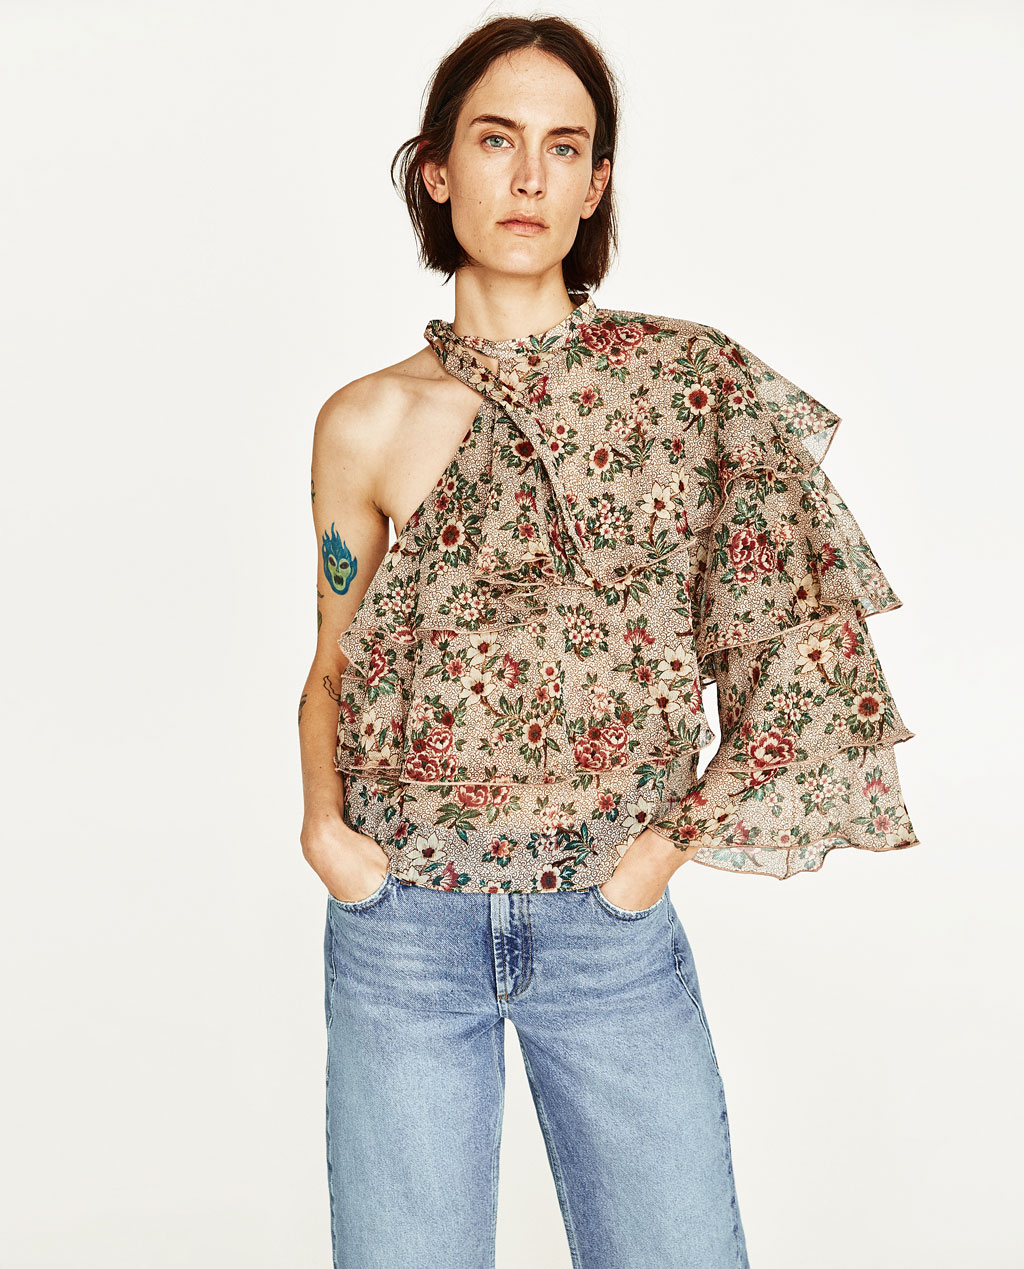 Check out this option from  Zara , 'Asymmetric Printed Top' $45.90